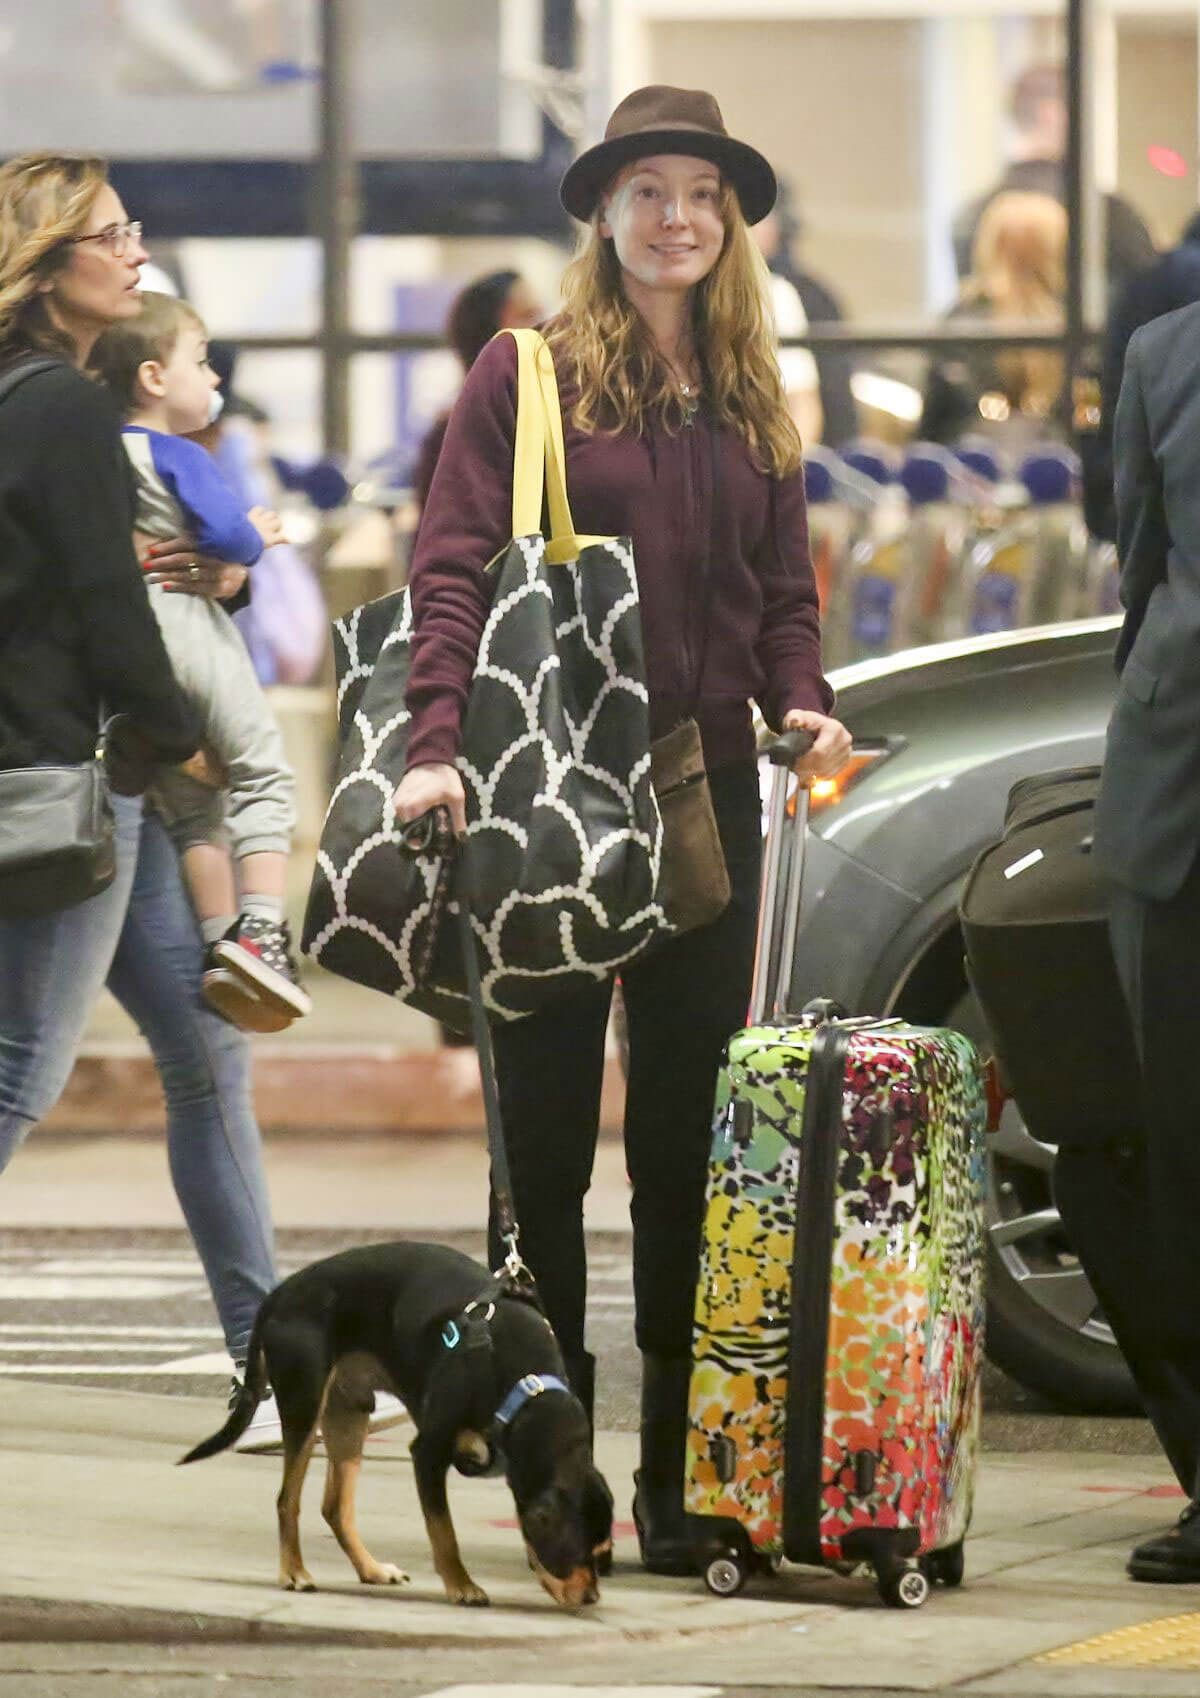 Alicia Witt with her Dog Stills at LAX Airport in Los Angeles